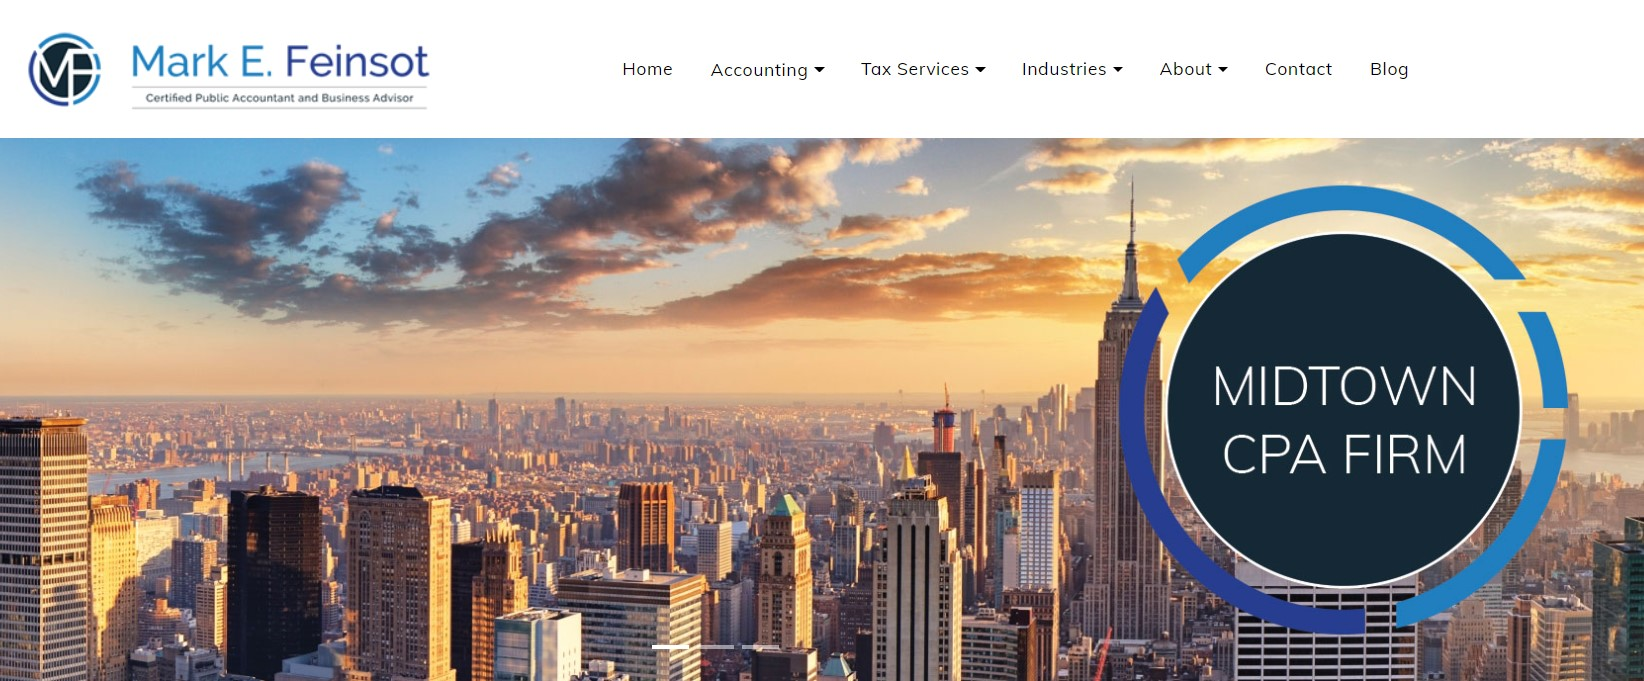 mark feinsot accountant in new york